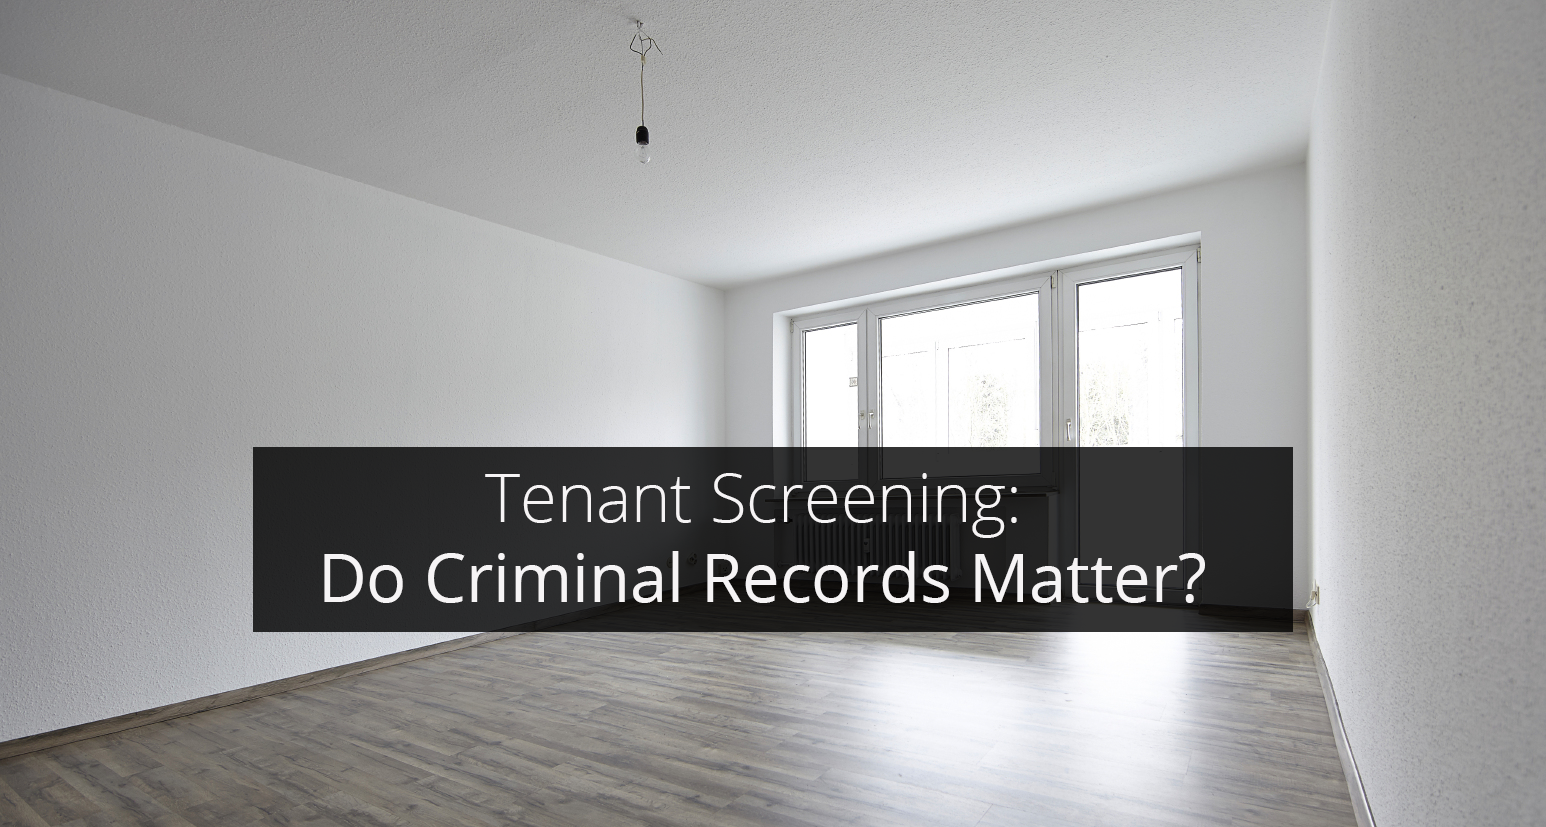 Tenant_Screening_-_Do_Criminal_Records_Matter.png